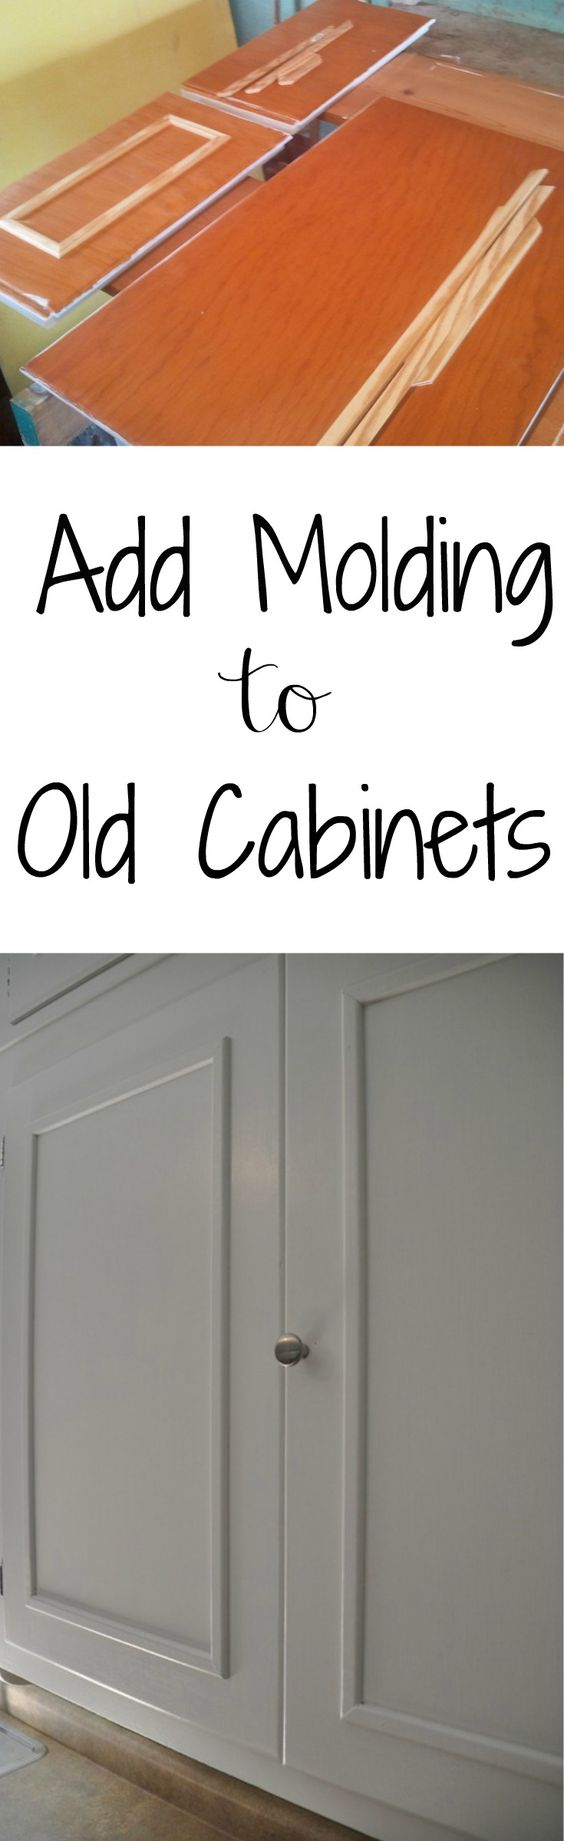 Ideas for old kitchen cabinets plus inc direct toms river nj and more